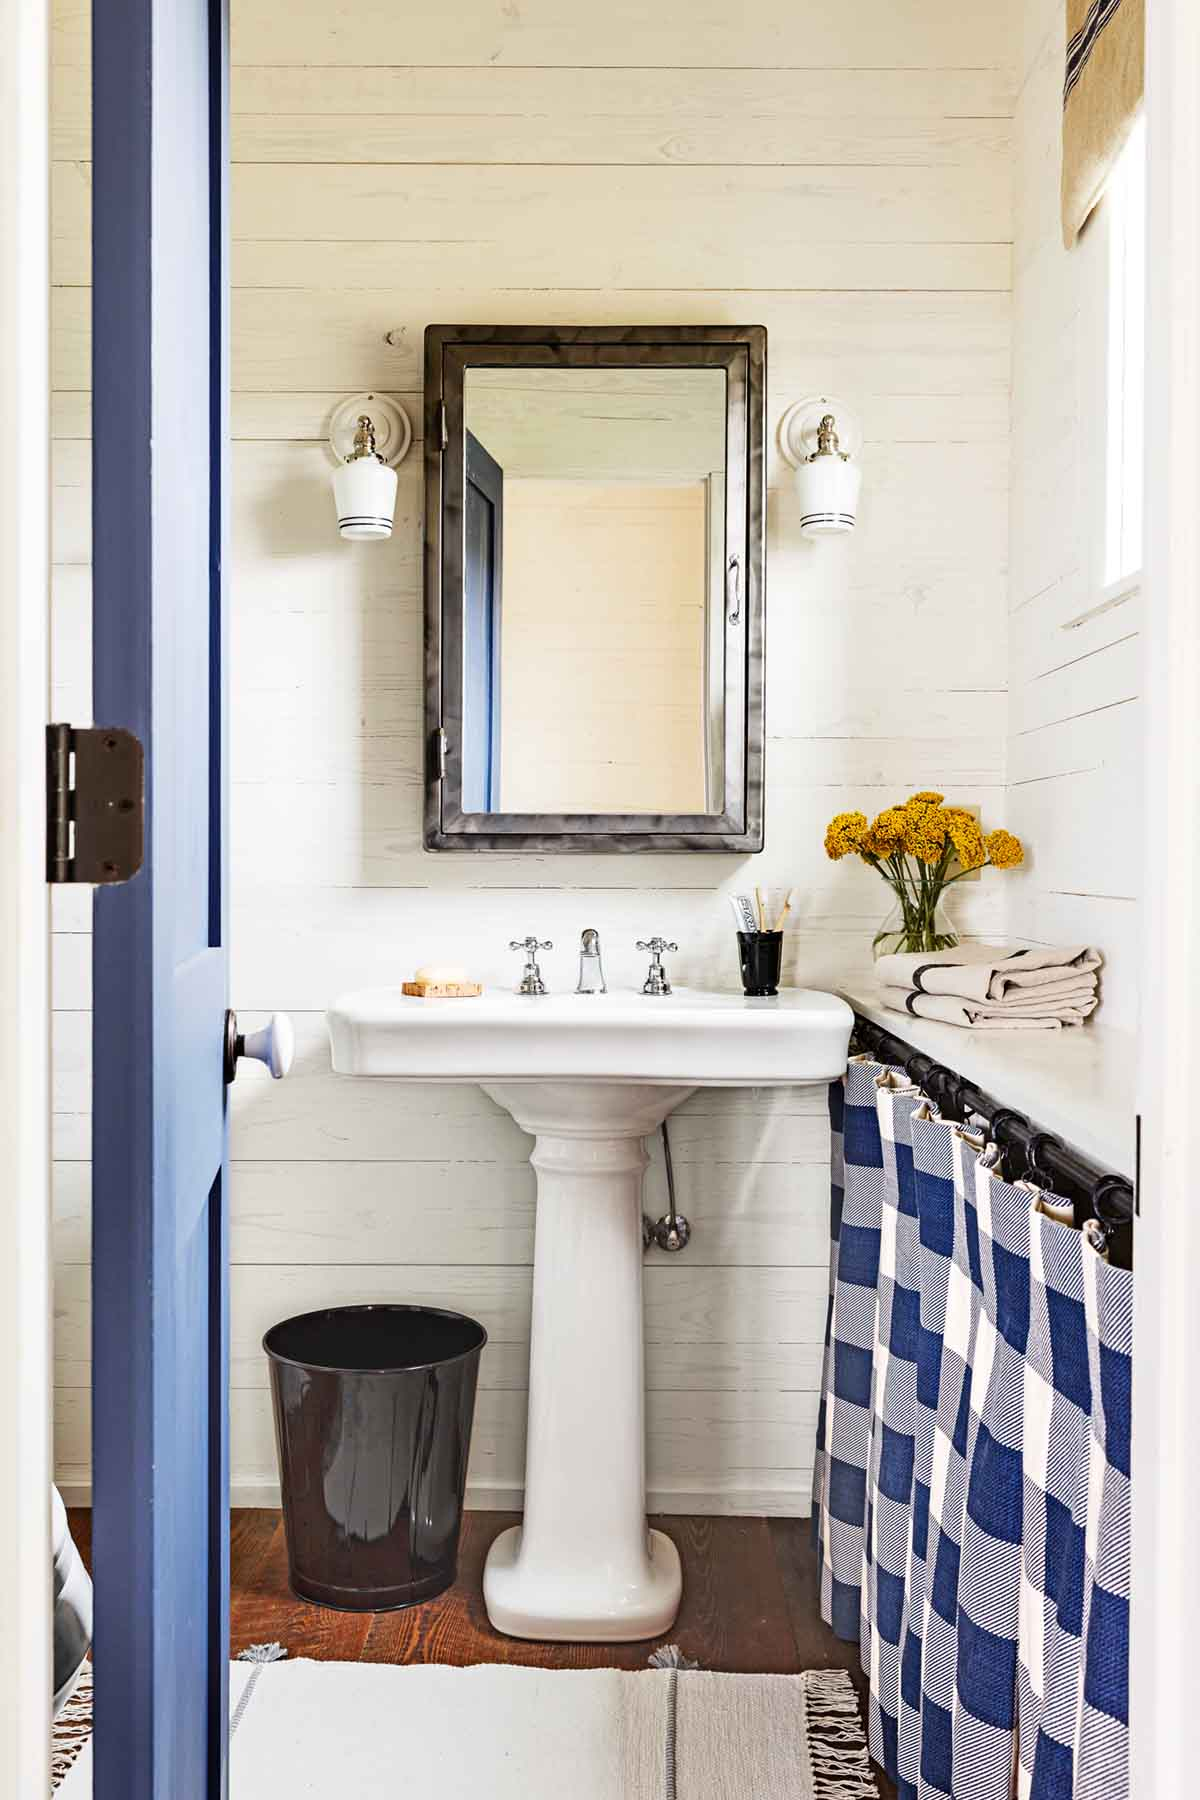 34 rustic bathroom decor ideas rustic modern bathroom for Bathroom ideas rustic